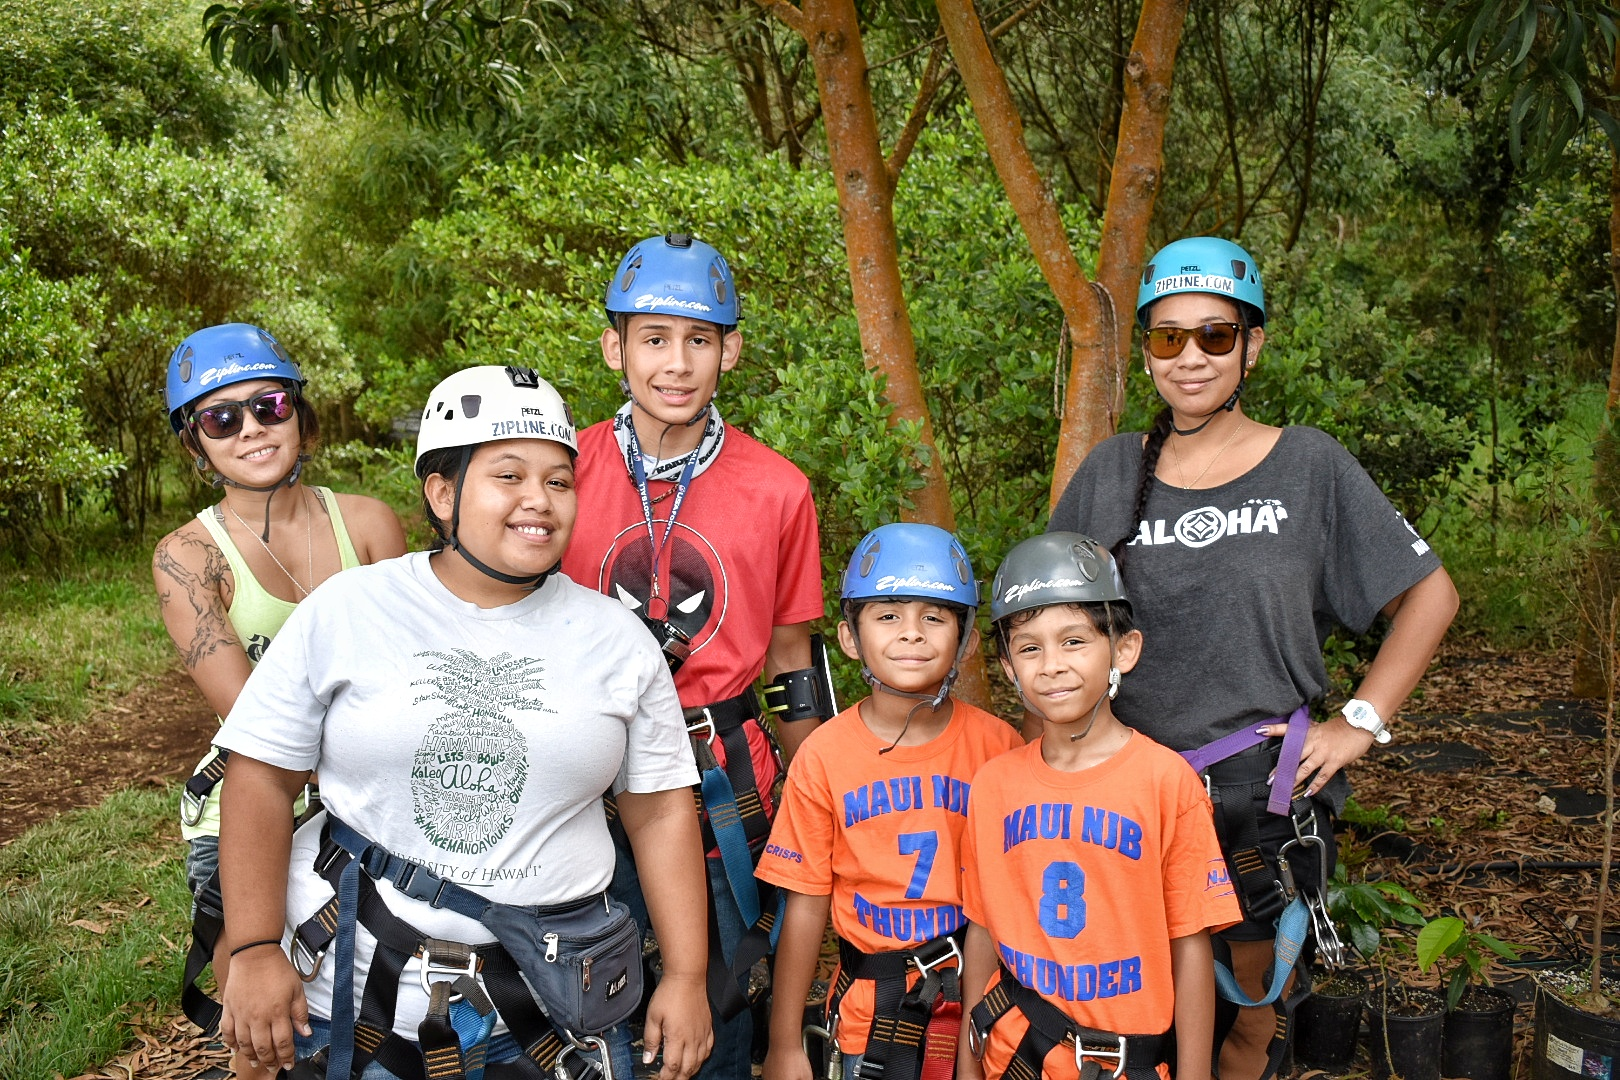 skyline eco adventures zipline, zipline, zipline hawaii, hawaii's #1 zipline, adventure, blogger, review, hawaii, maui, must do while on maui, maui activities, tourist activities, fun on maui, maui fun, Zip line,